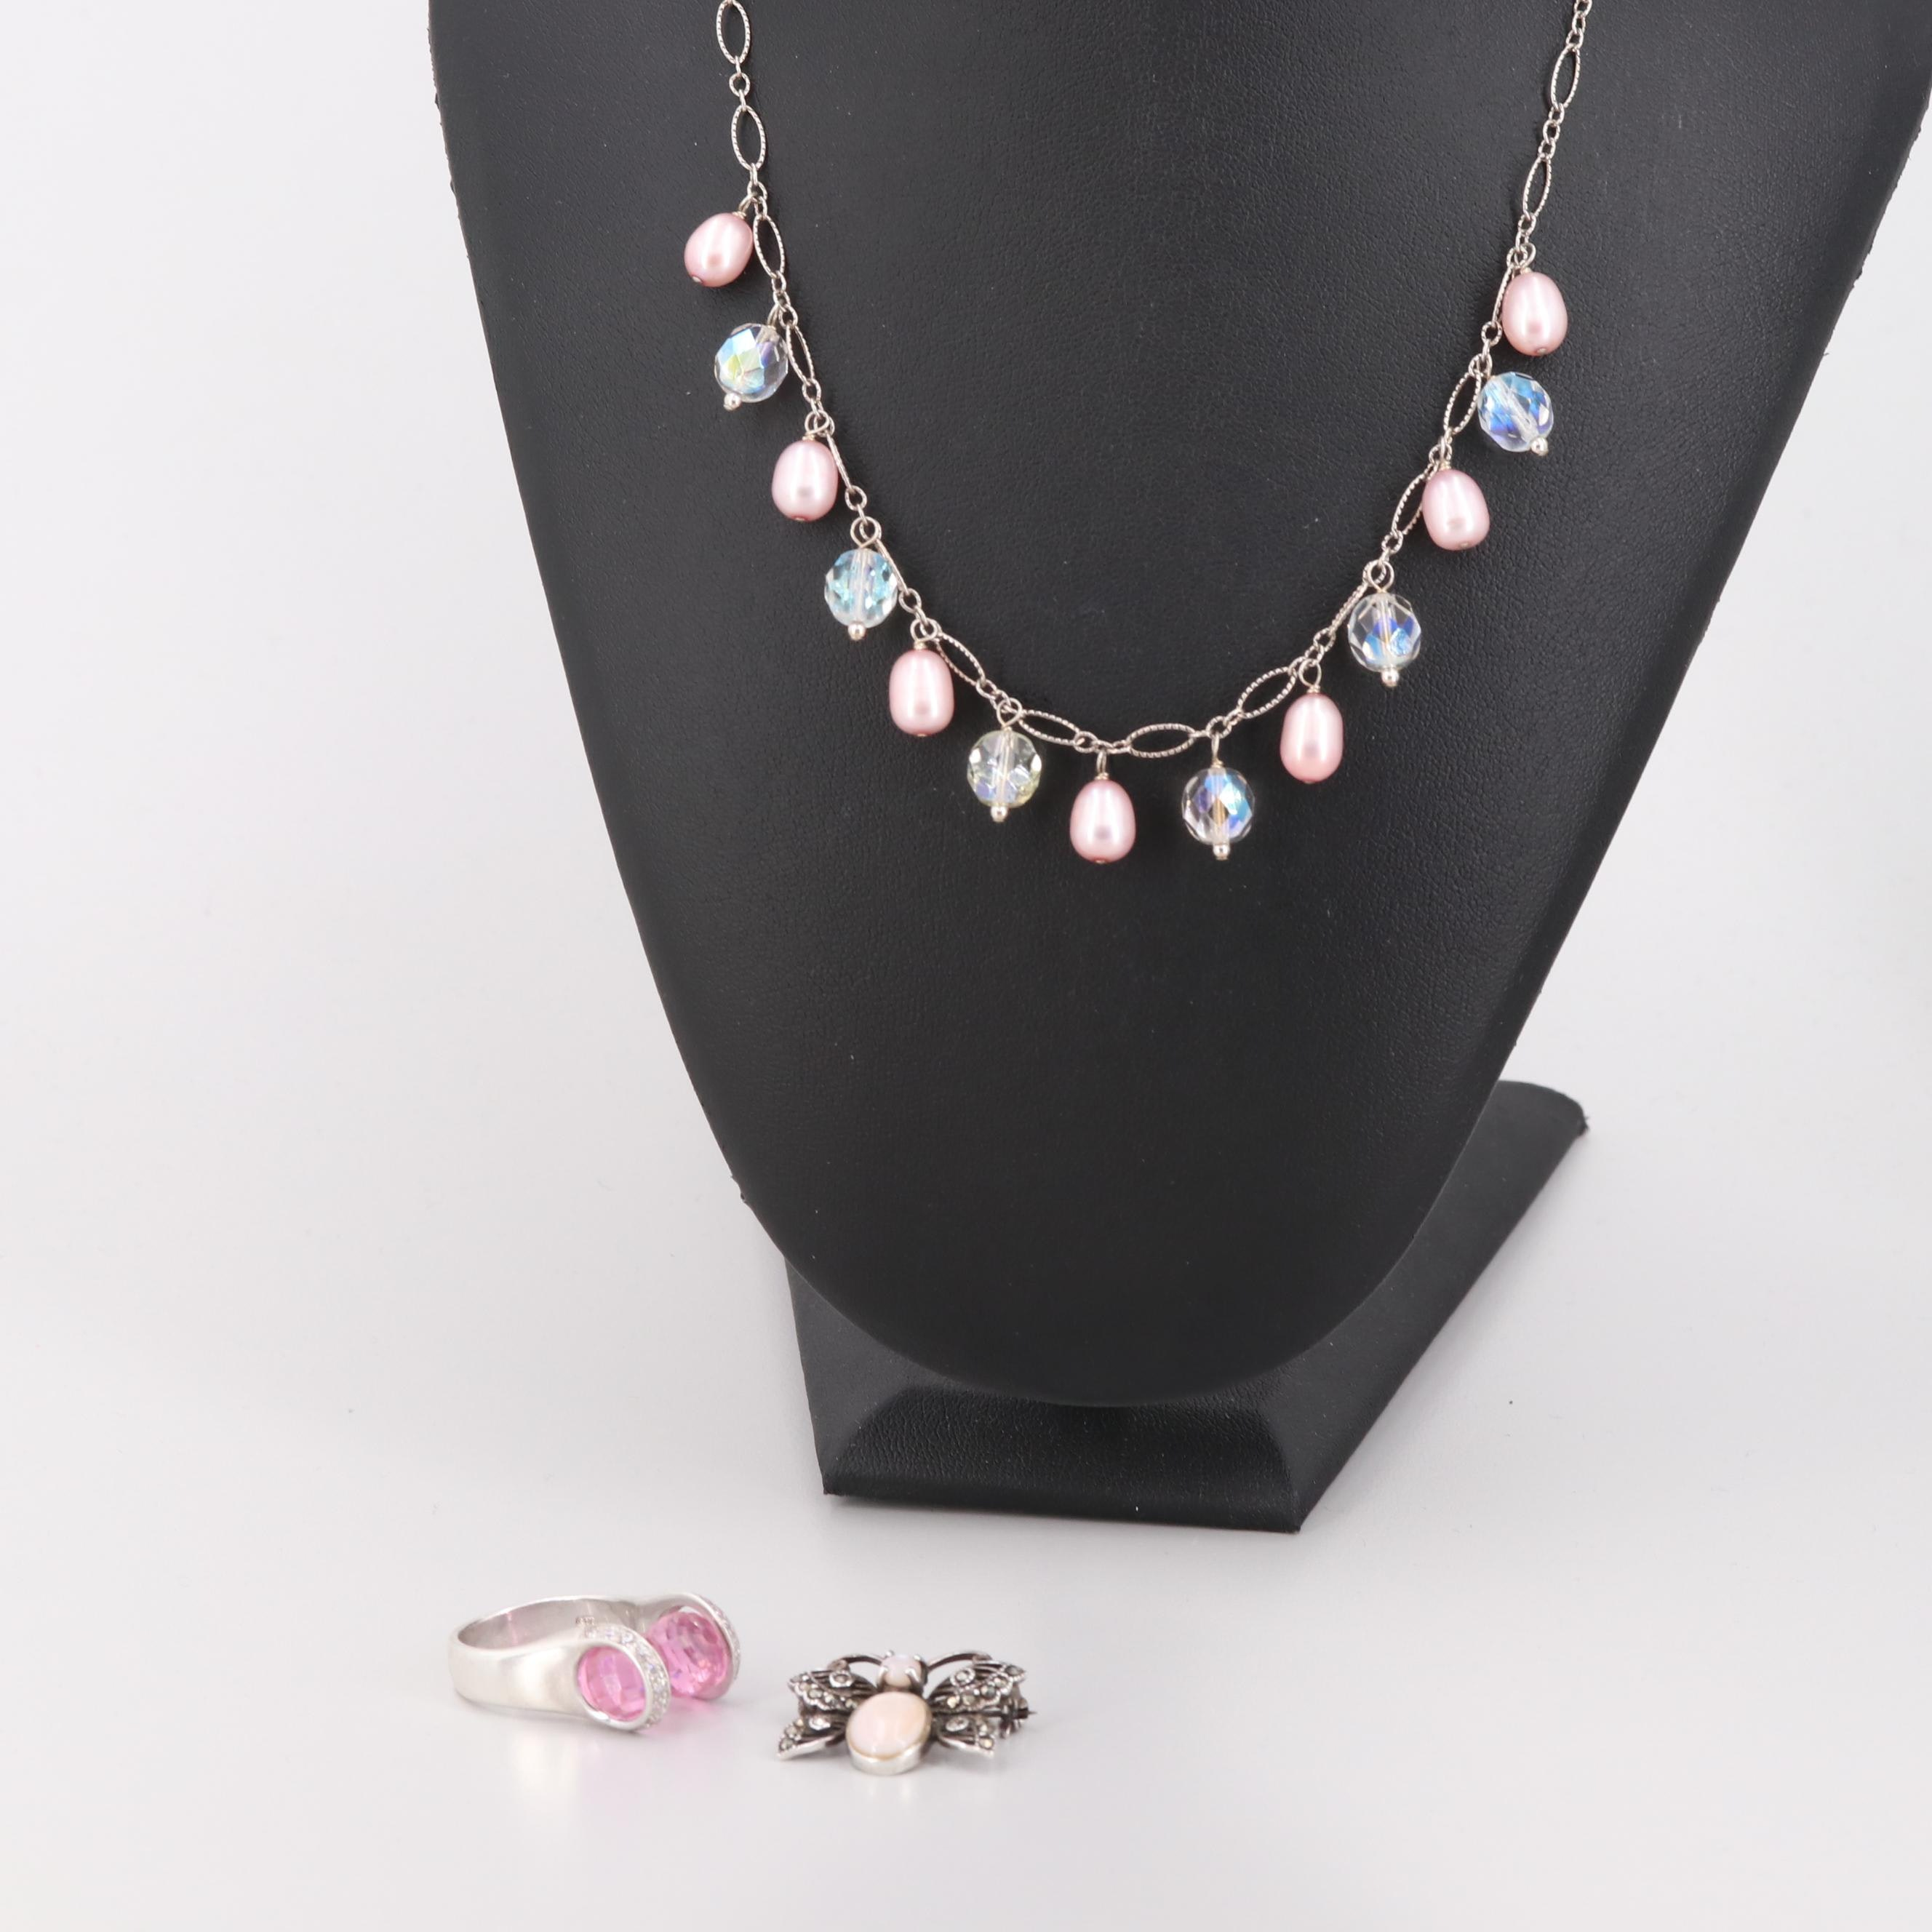 Sterling Silver Jewelry Including Cultured Pearls, Quartz, and Cubic Zirconia